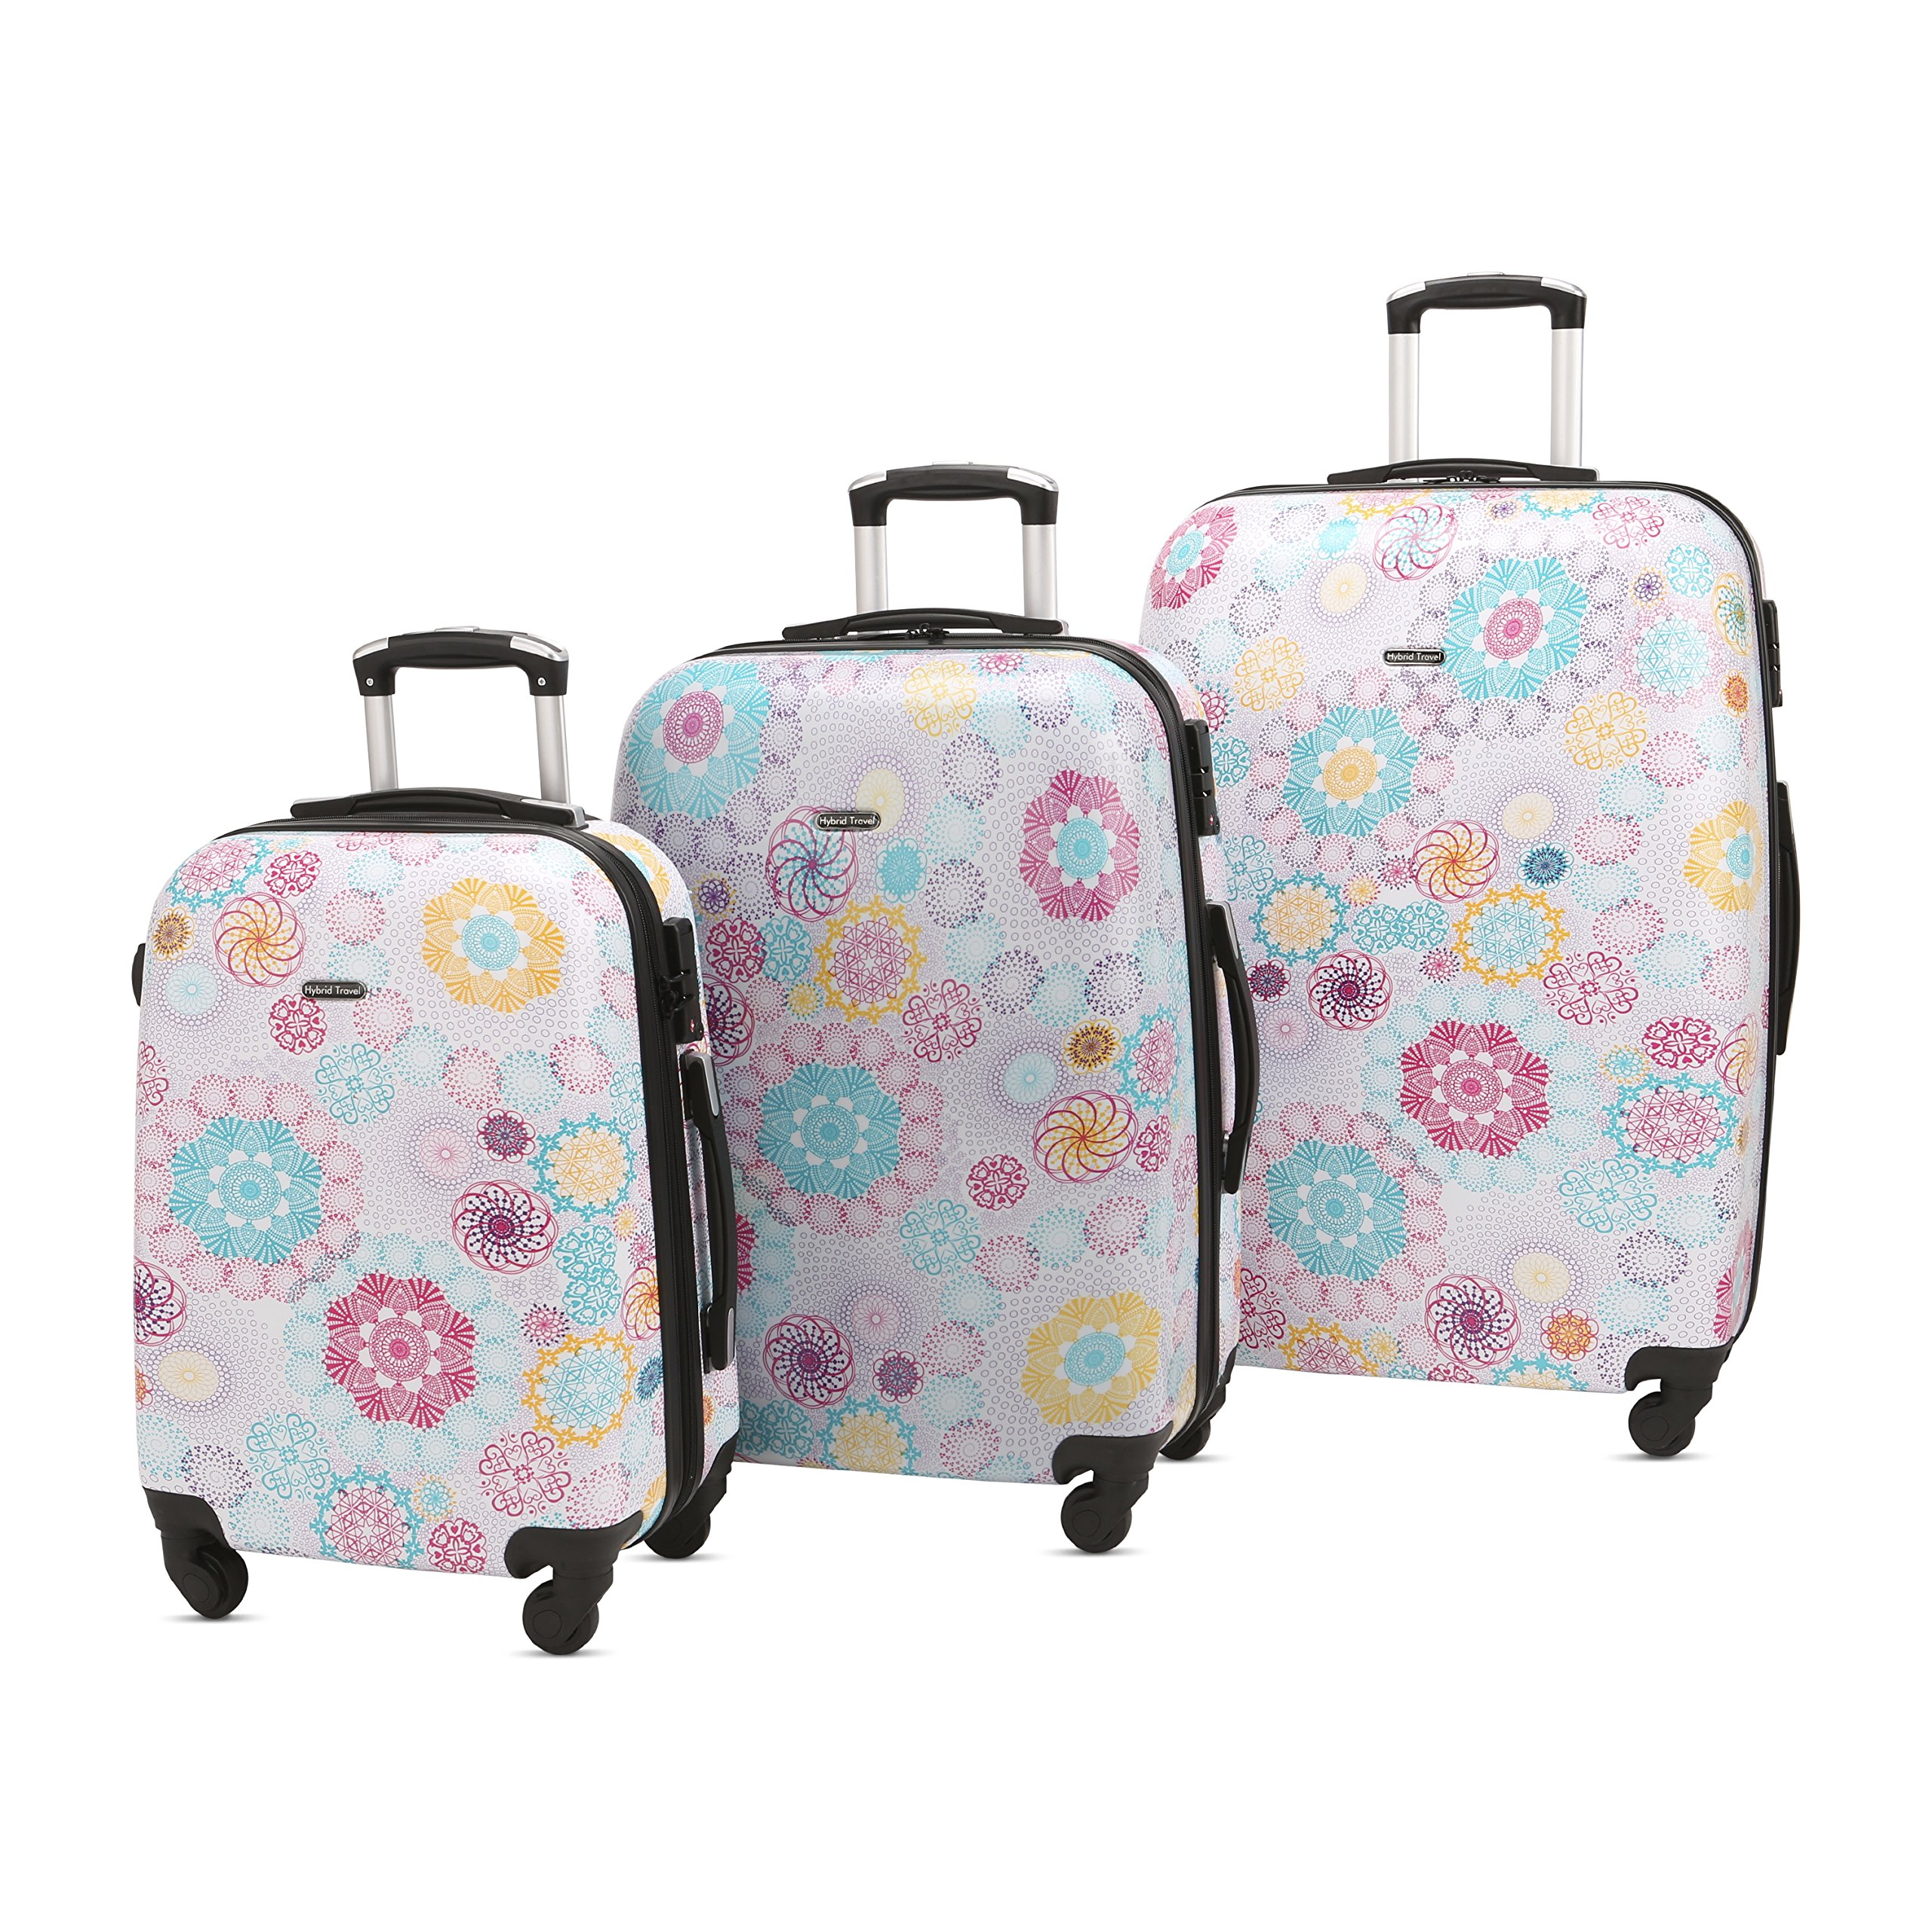 3 Piece Luggage Set Durable Lightweight Hard Case pinner Suitecase 20in24in28in LUG3 PC74 flower circle